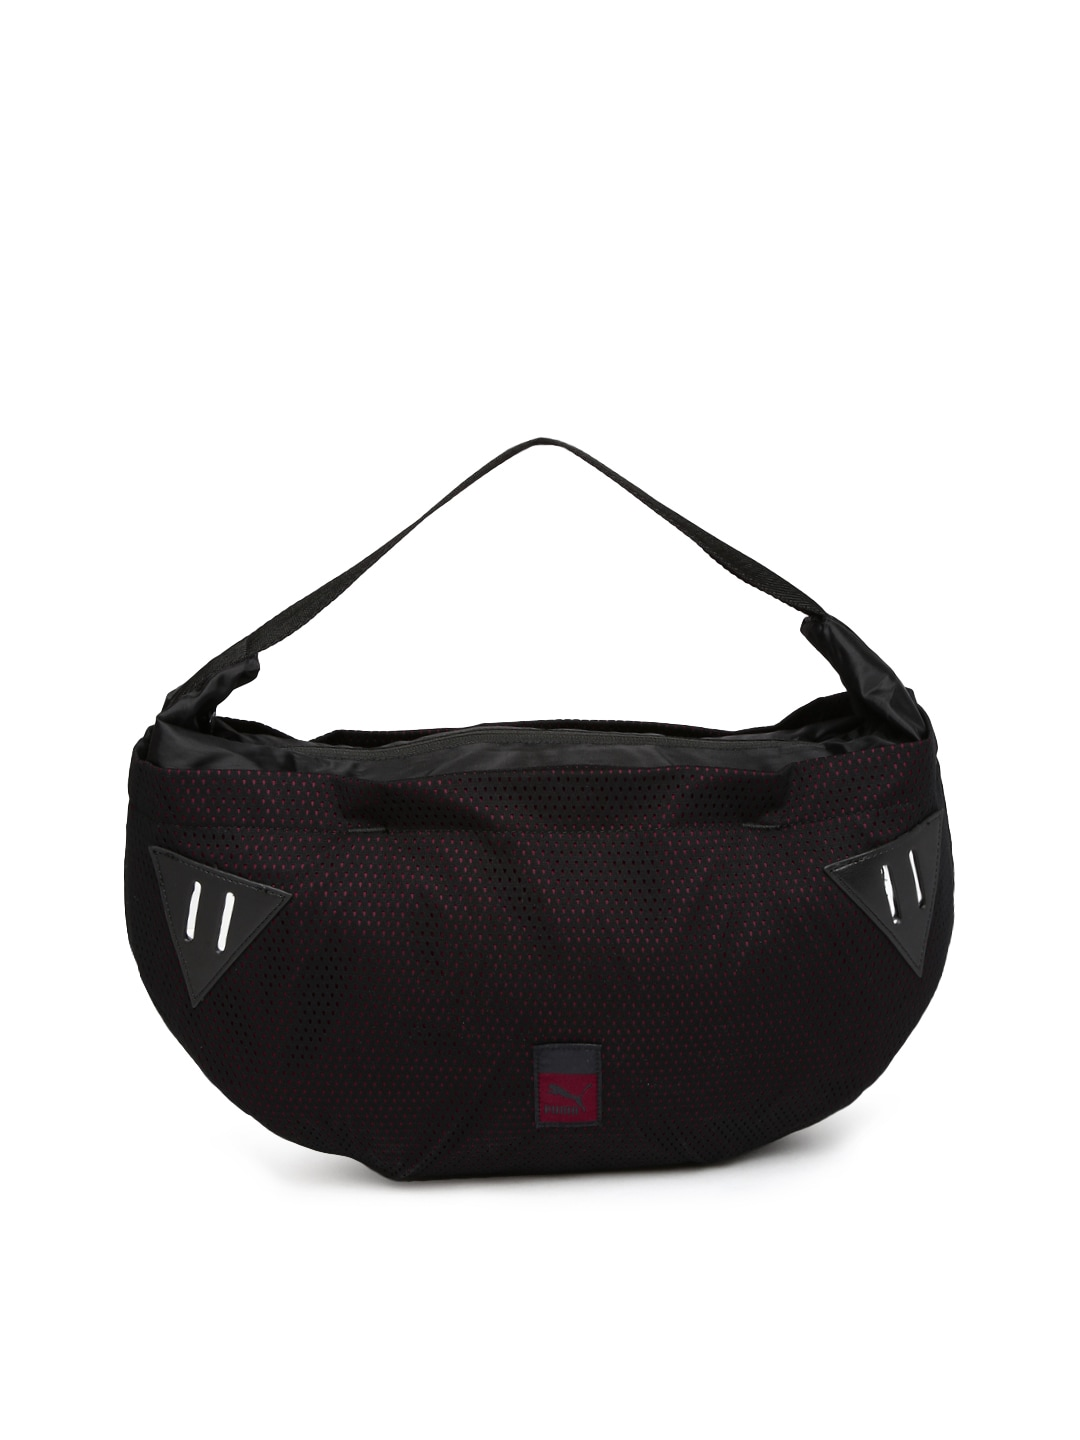 Puma Duffle Bag Myntra | Sabis Bulldog Athletics